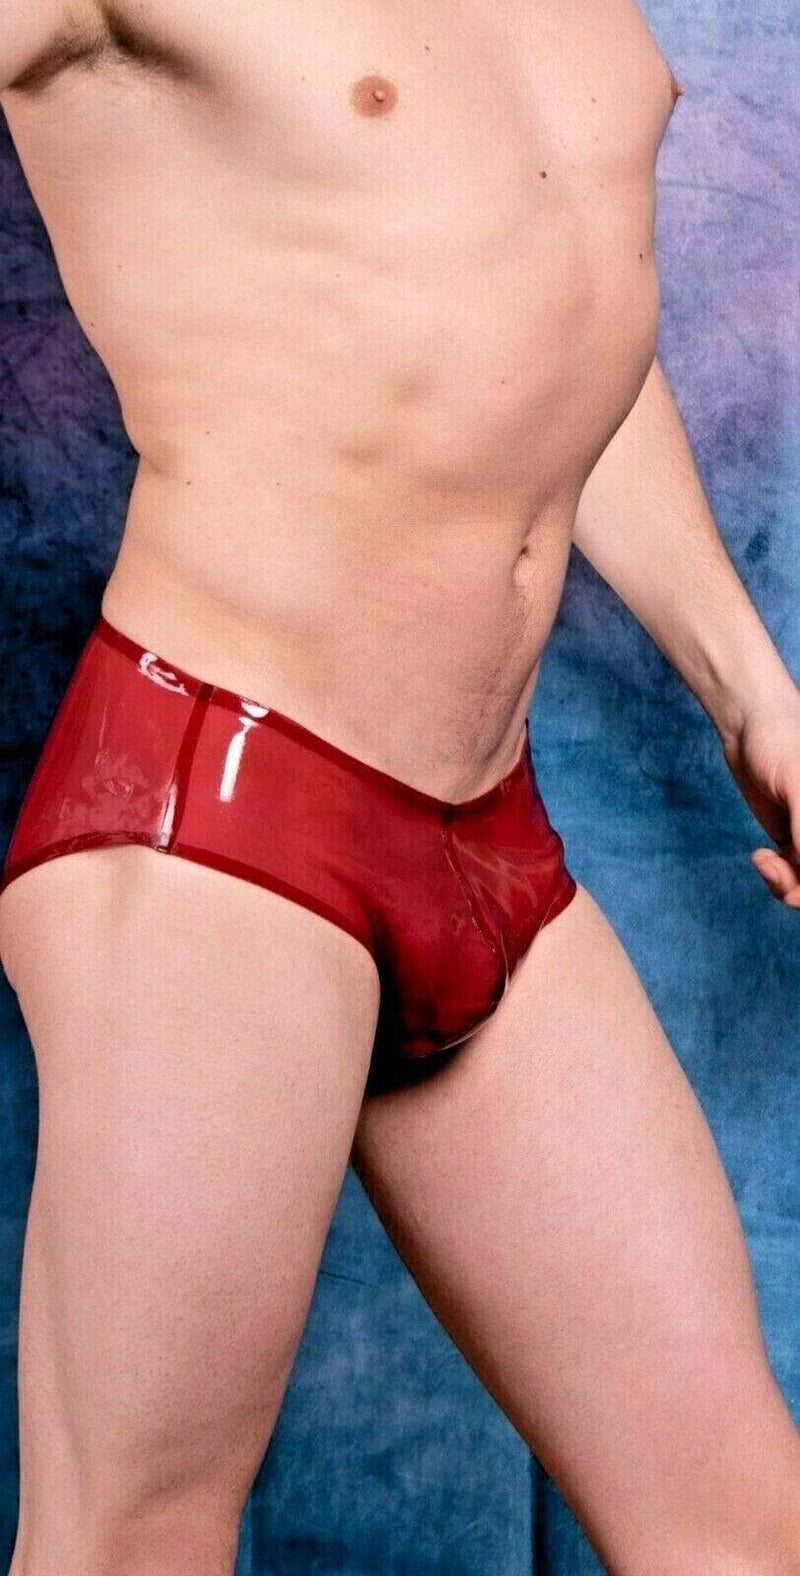 Polymorphe L Polymorphe Mens Rubber Underwear Mens Briefs Top Quality Mens Latex Cherry 15A